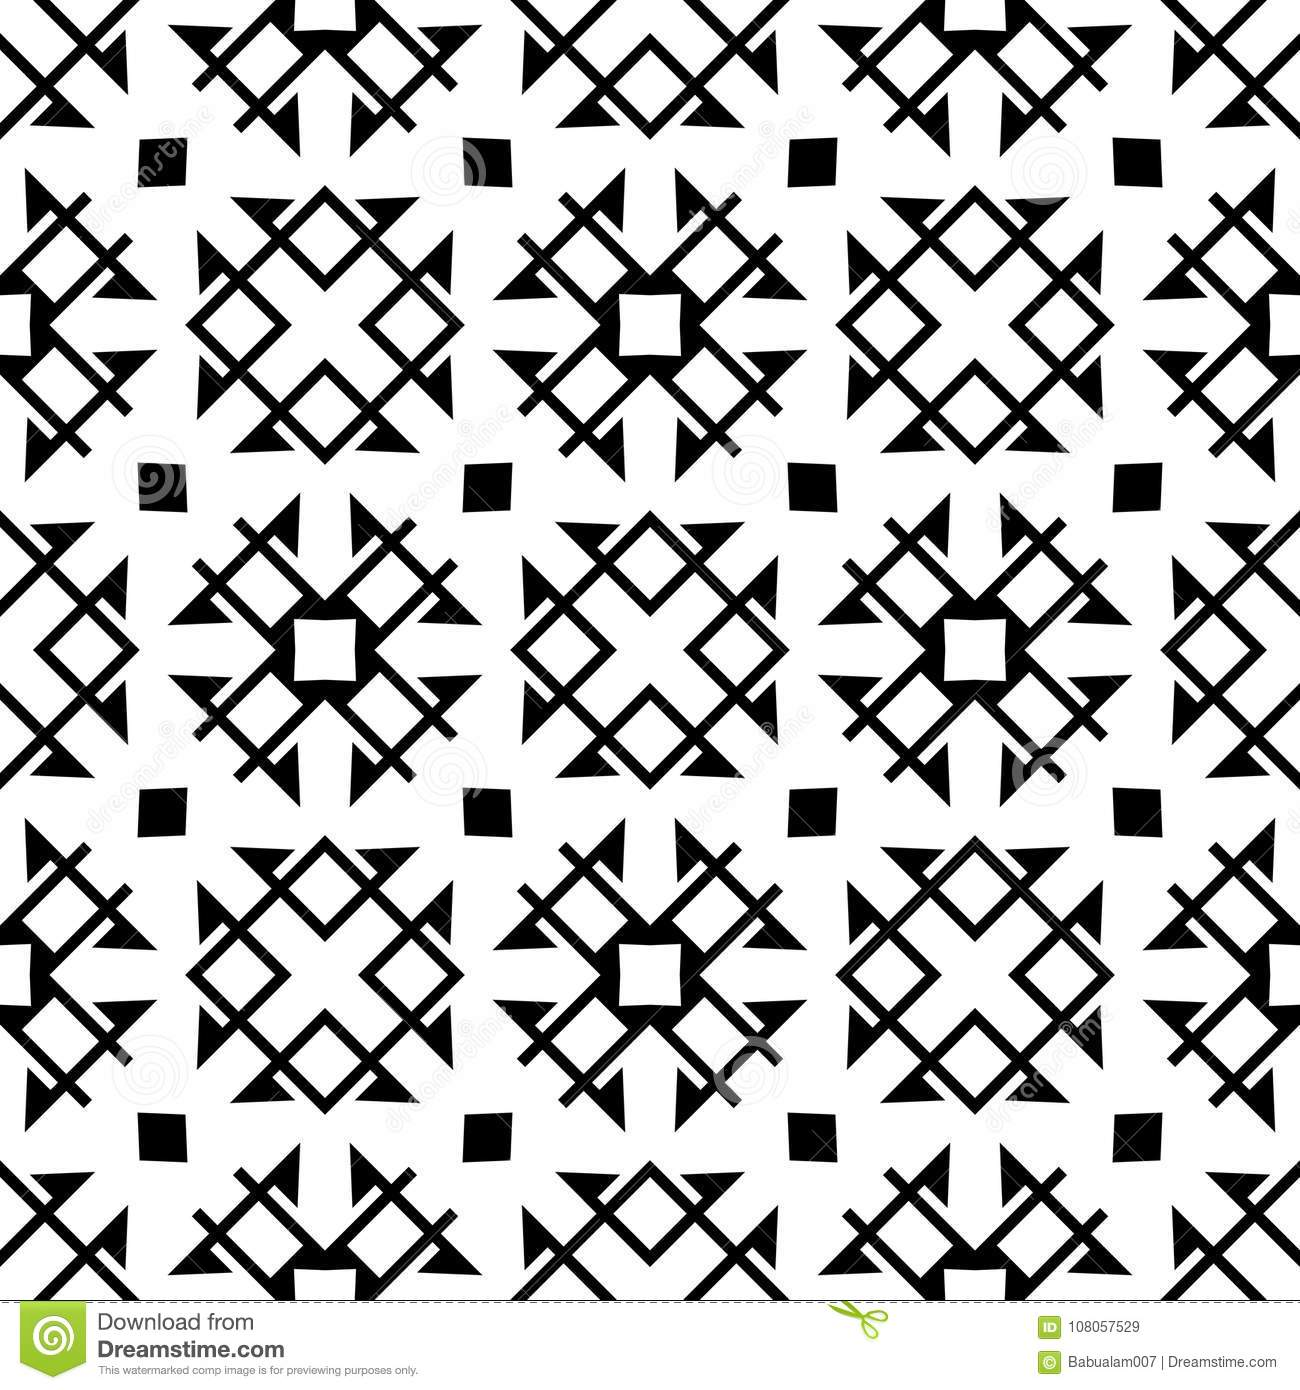 Great Wallpaper Home Screen Black And White - background-wallpaper-screen-sever-book-cover-printing-laser-cutting-designs-vector-black-white-pattern-design-dot-geometric-108057529  Collection_182652.jpg